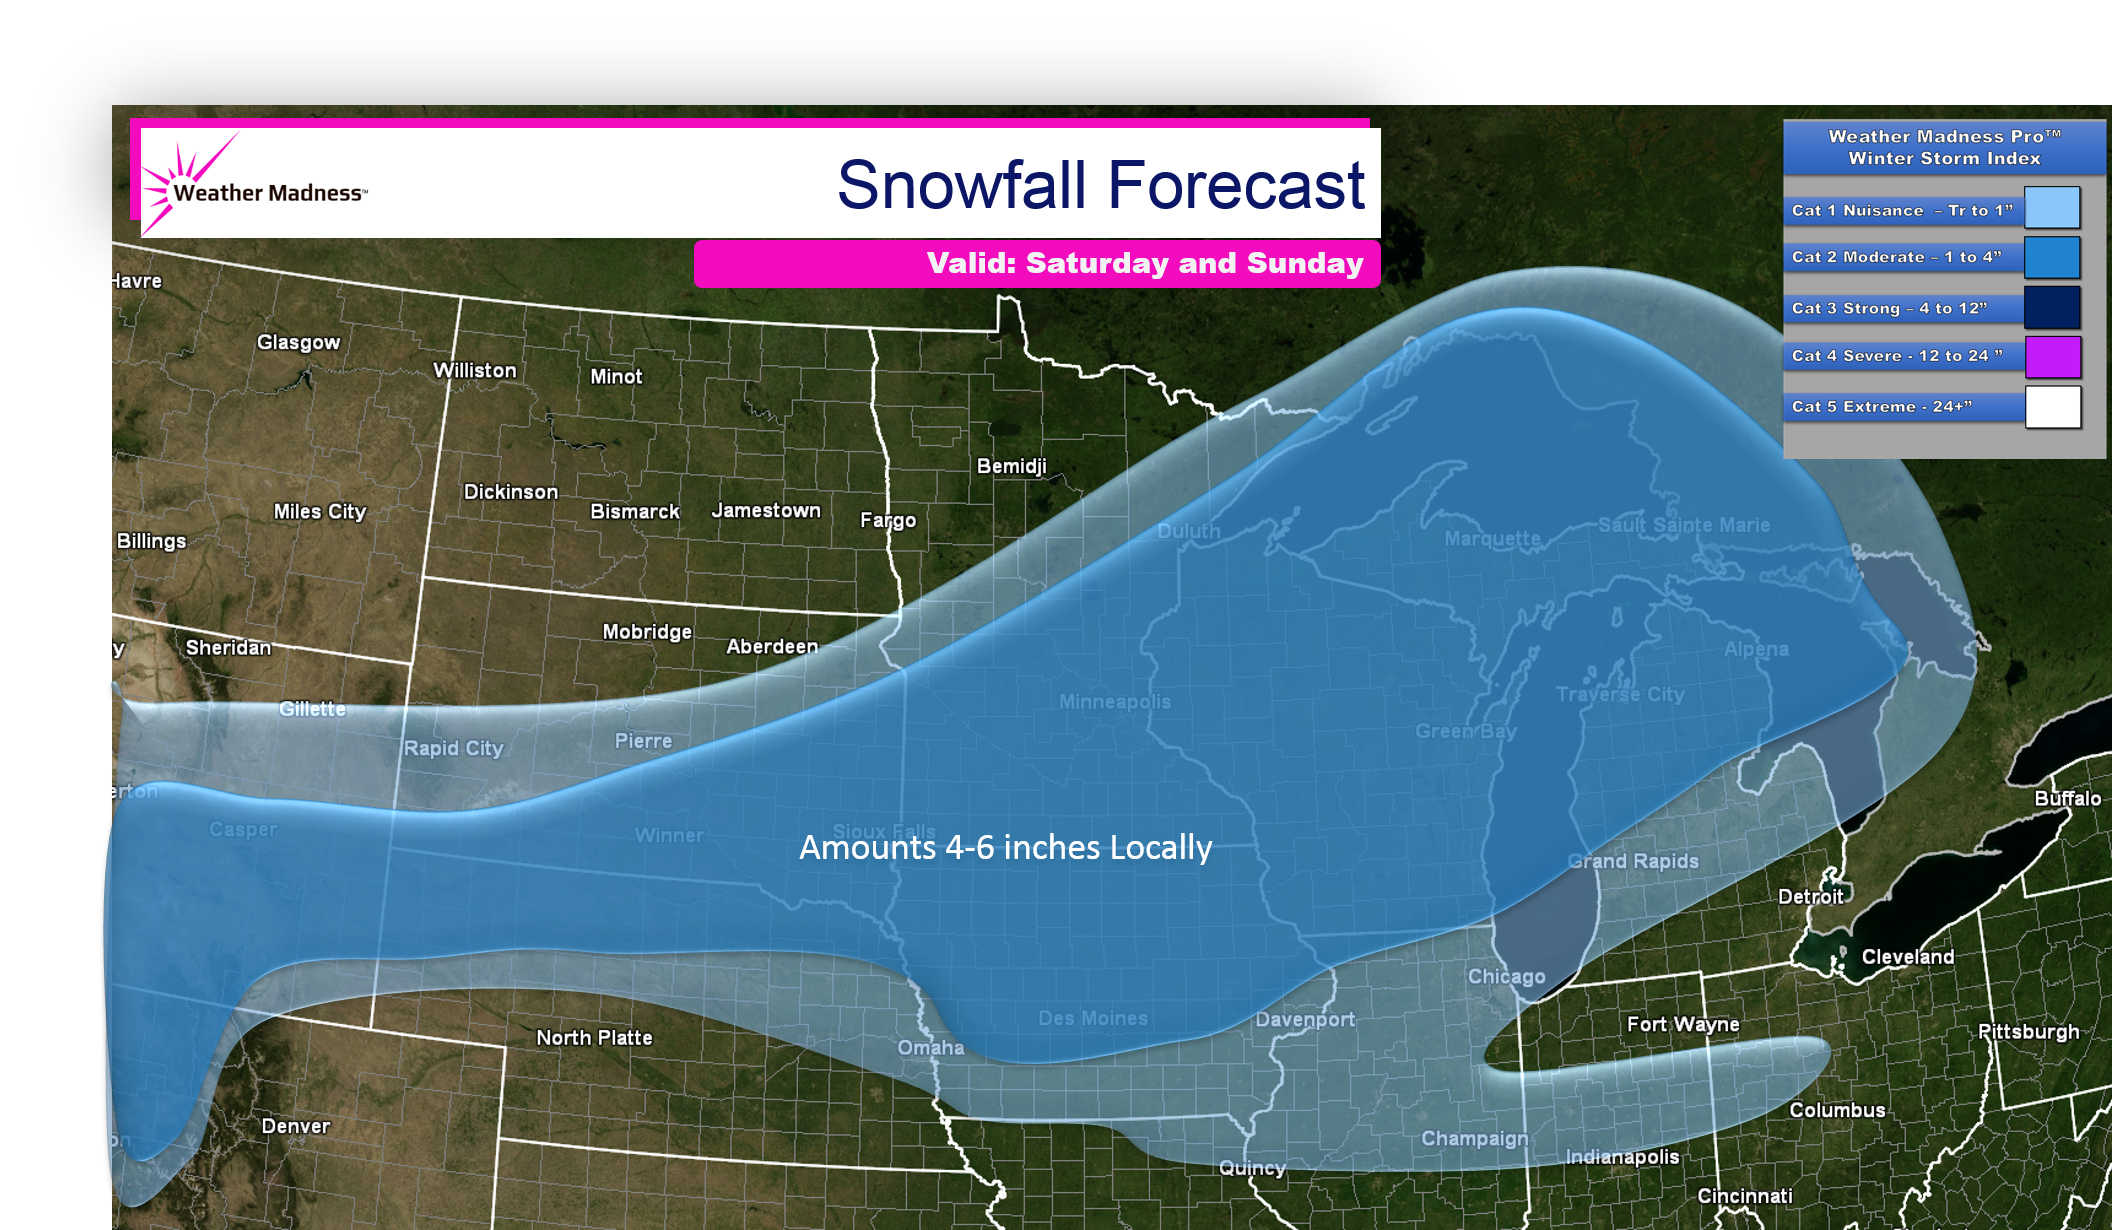 Updated Snow Map for the Midwest Snow